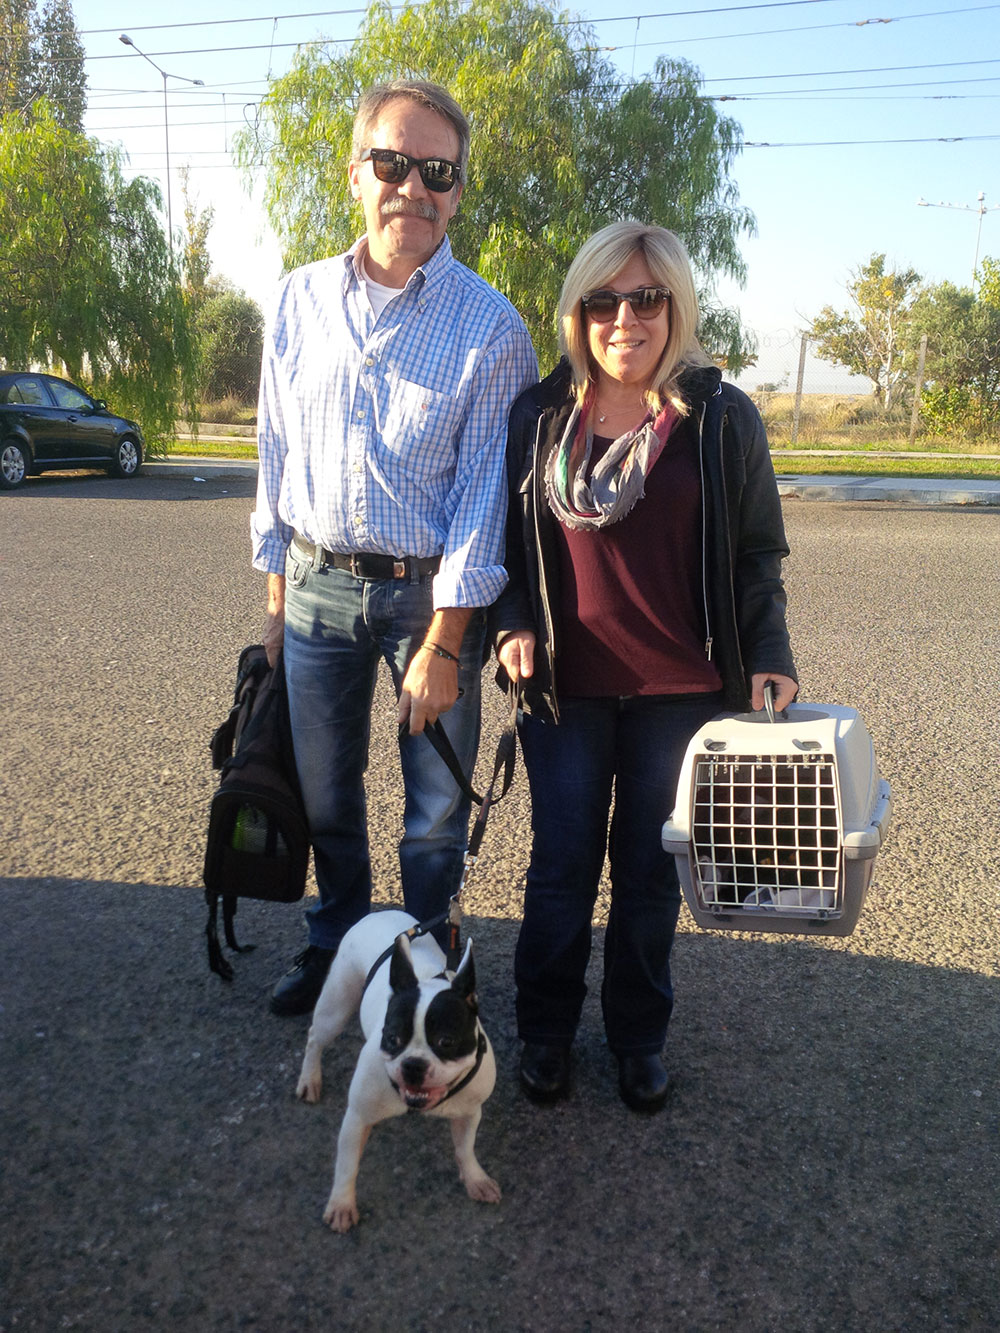 Toula and Zisis with their dog Zoe — in the cat box is Gismo, who belongs to their daughter Sophia